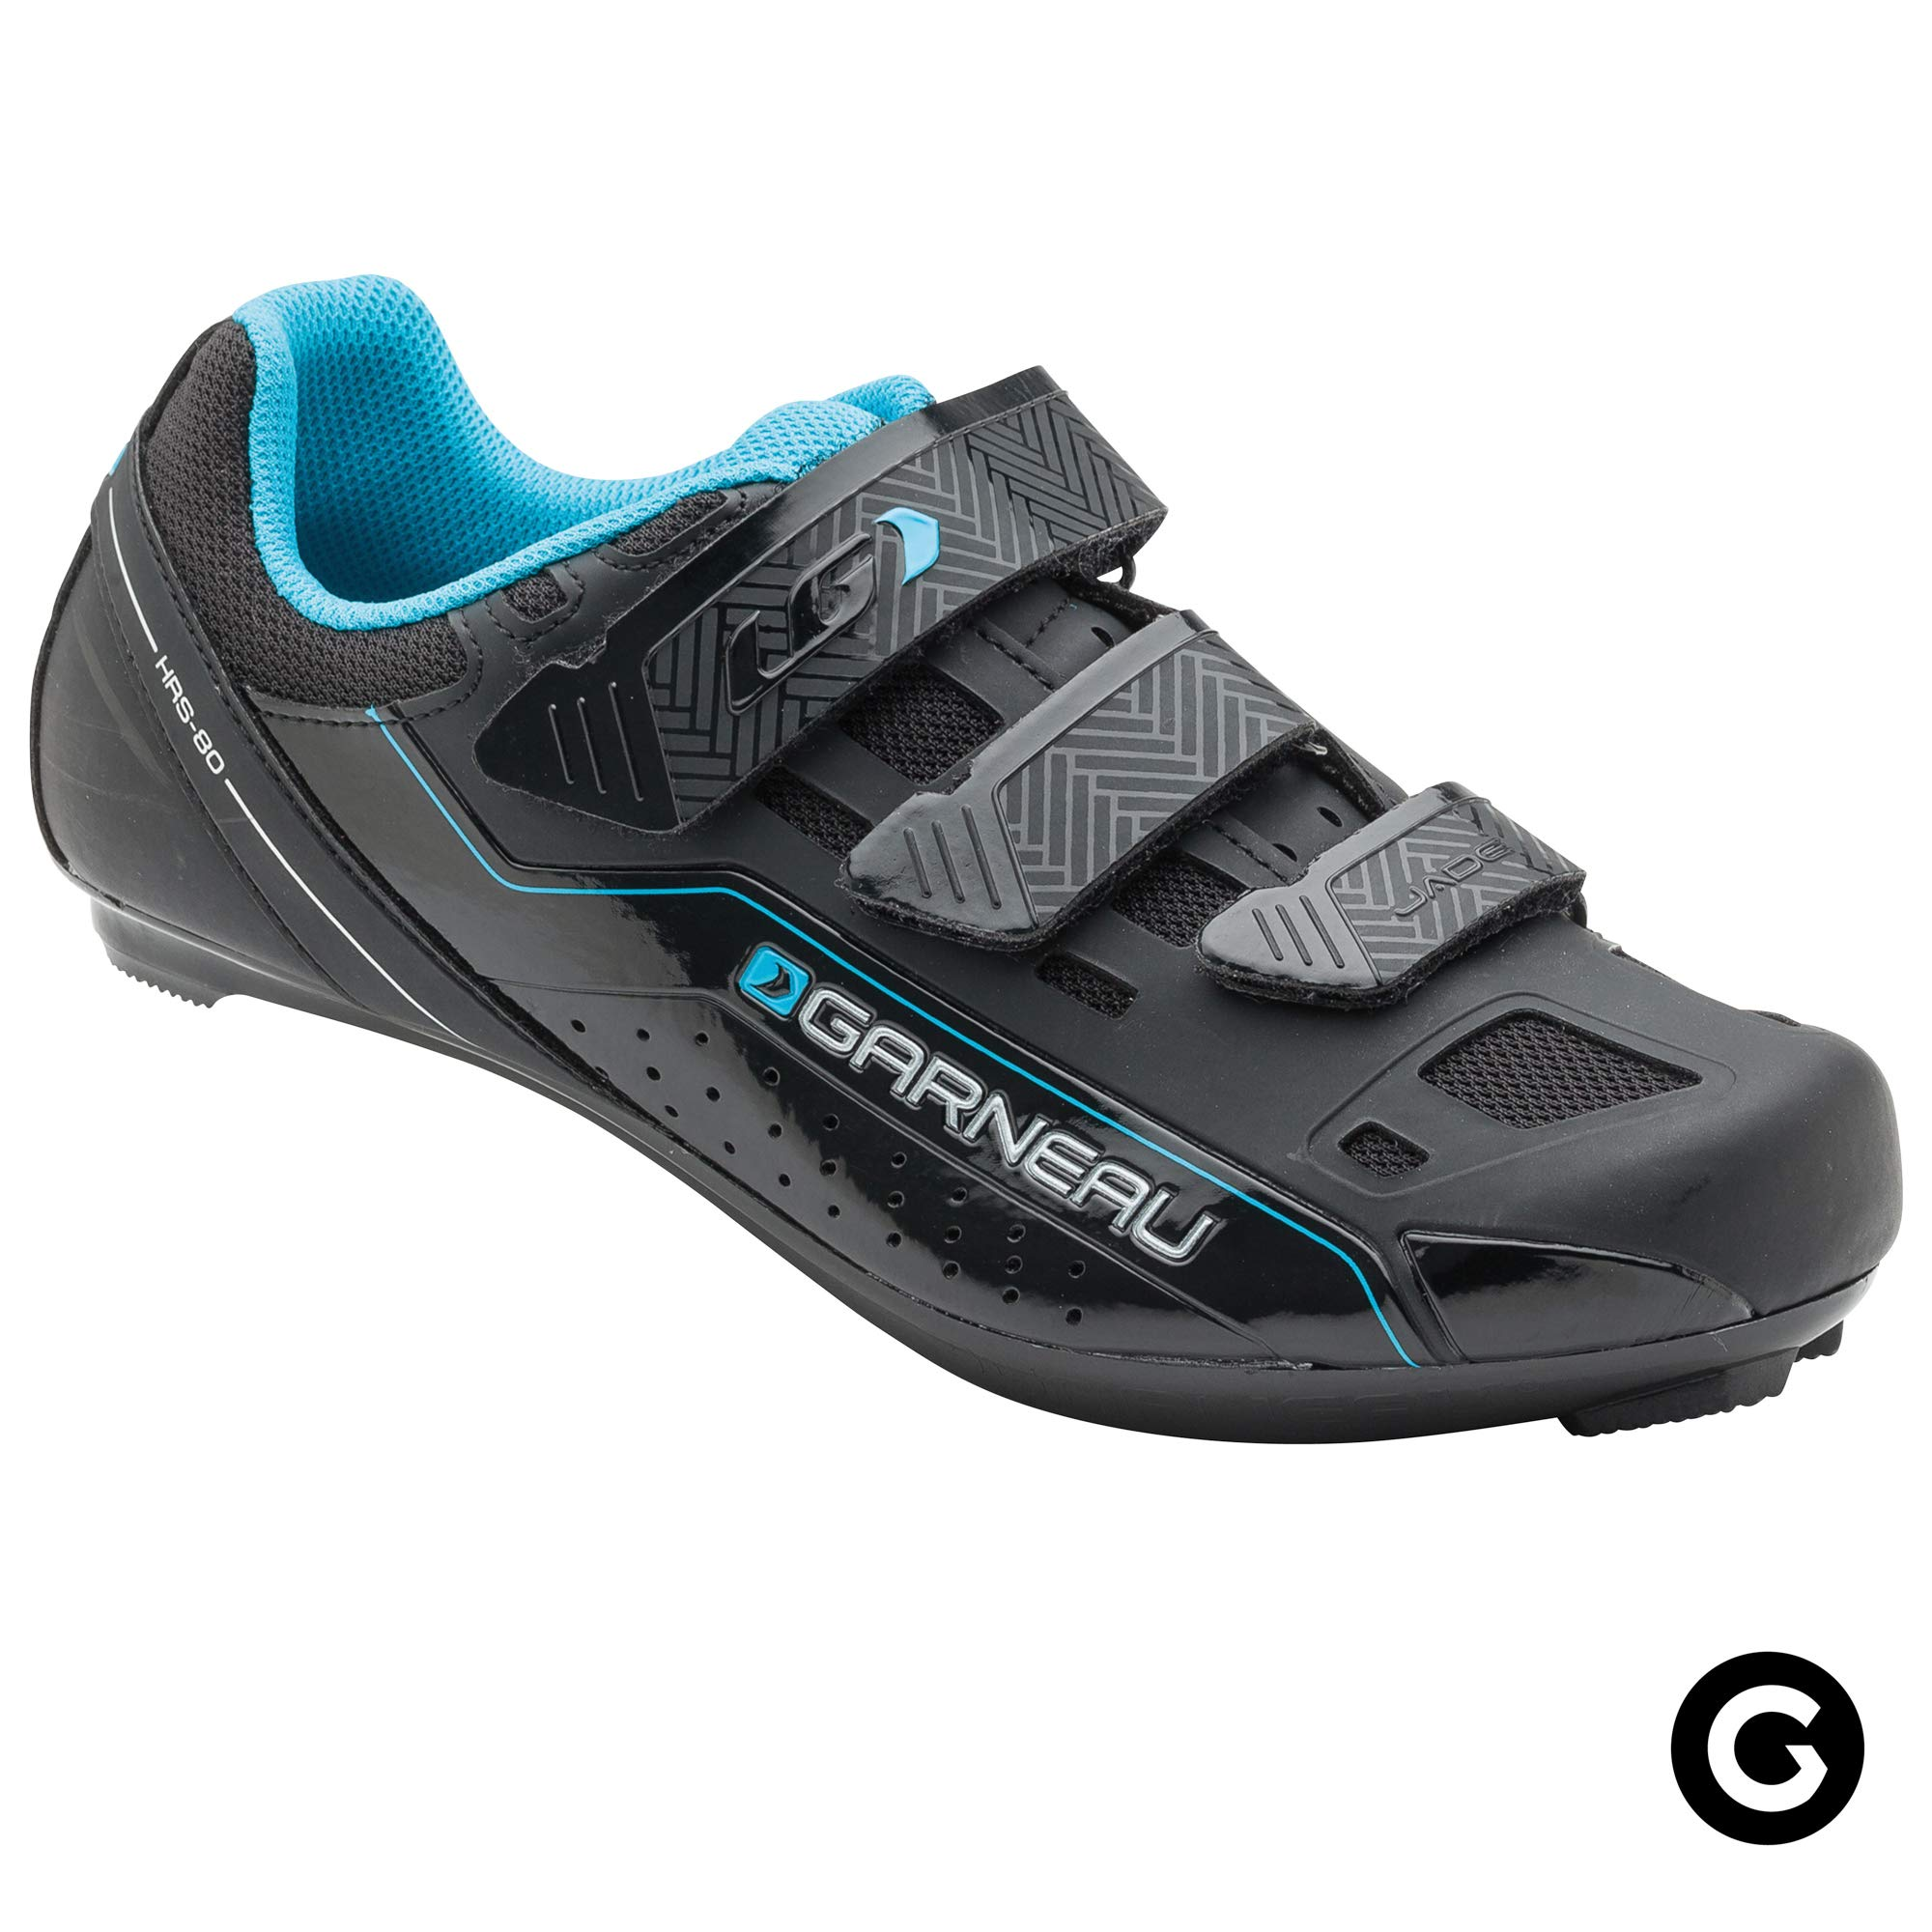 Louis Garneau Women's Jade Bike Shoes for Commuting and Indoor Cycling, Compatible with SPD, Look and All Road Pedals, Black, US (10), EU (41) by Louis Garneau